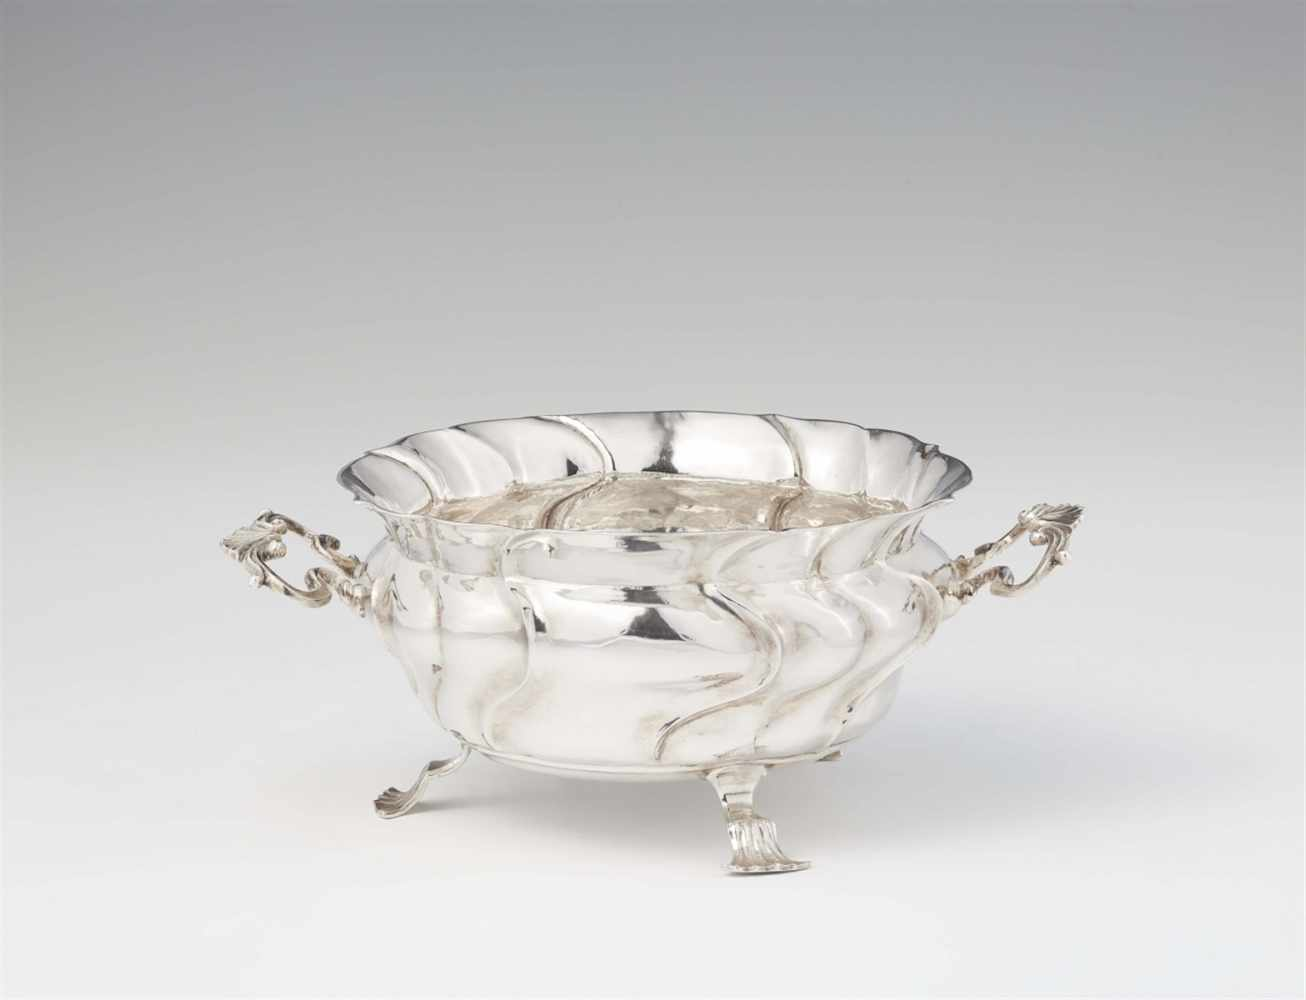 Lot 330 - An Augsburg Rococo silver dishBombé form twist fluted dish with scroll handles resting on three